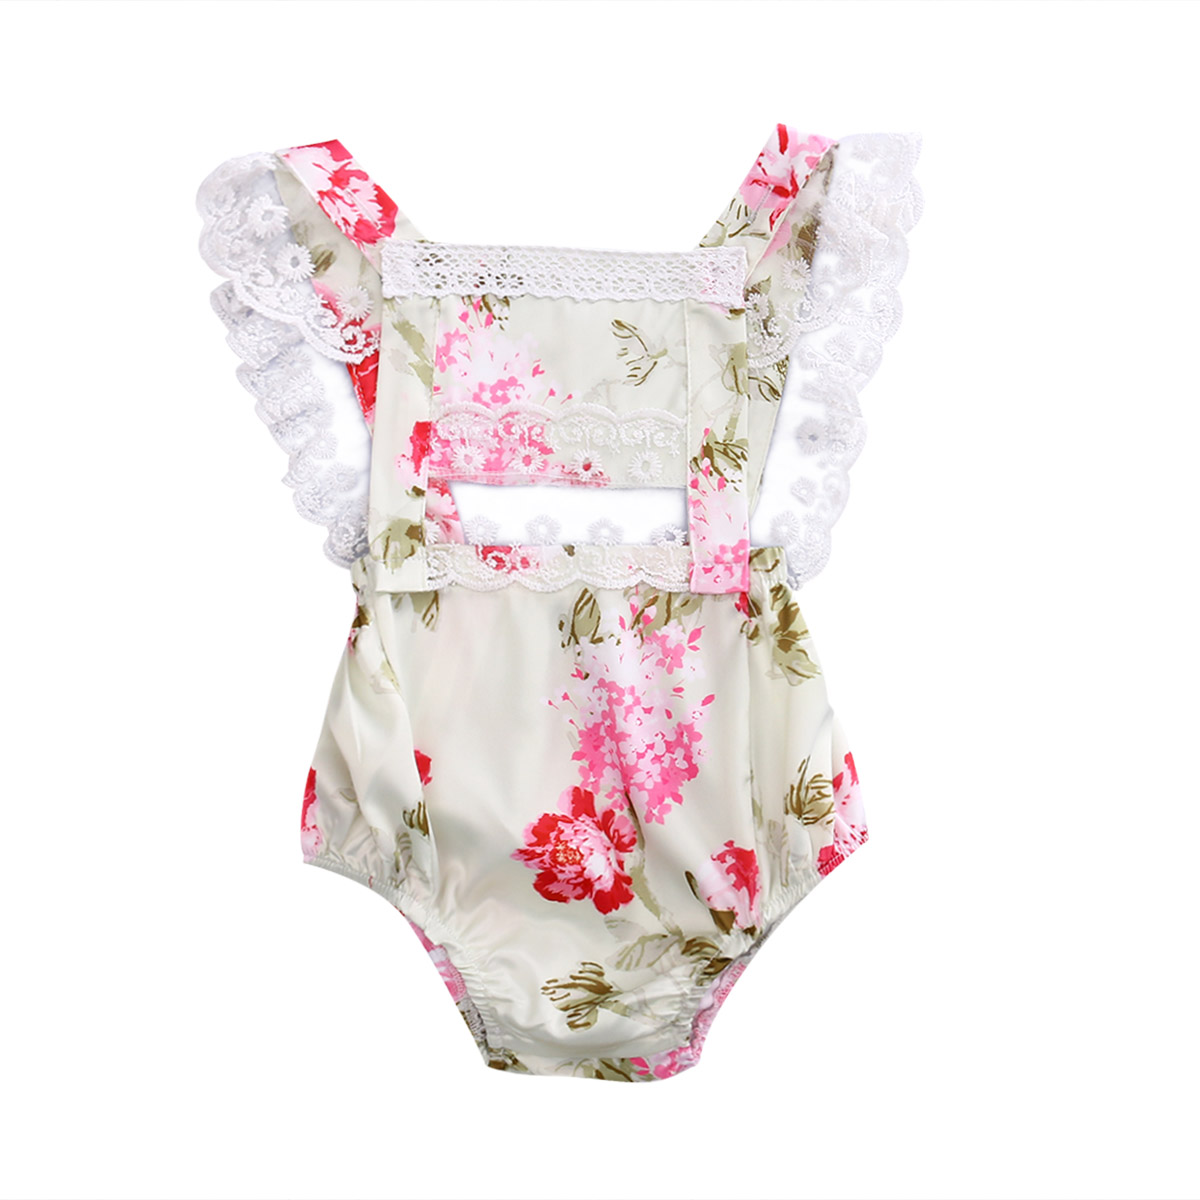 2017 Summer Floral Newborn Baby Girl Lace Romper Princess Girls Backless Hollow Out Peony Flower Jumpsuit Outfit Sunsuit Clothes newborn infant baby girl clothes strap lace floral romper jumpsuit outfit summer cotton backless one pieces outfit baby onesie